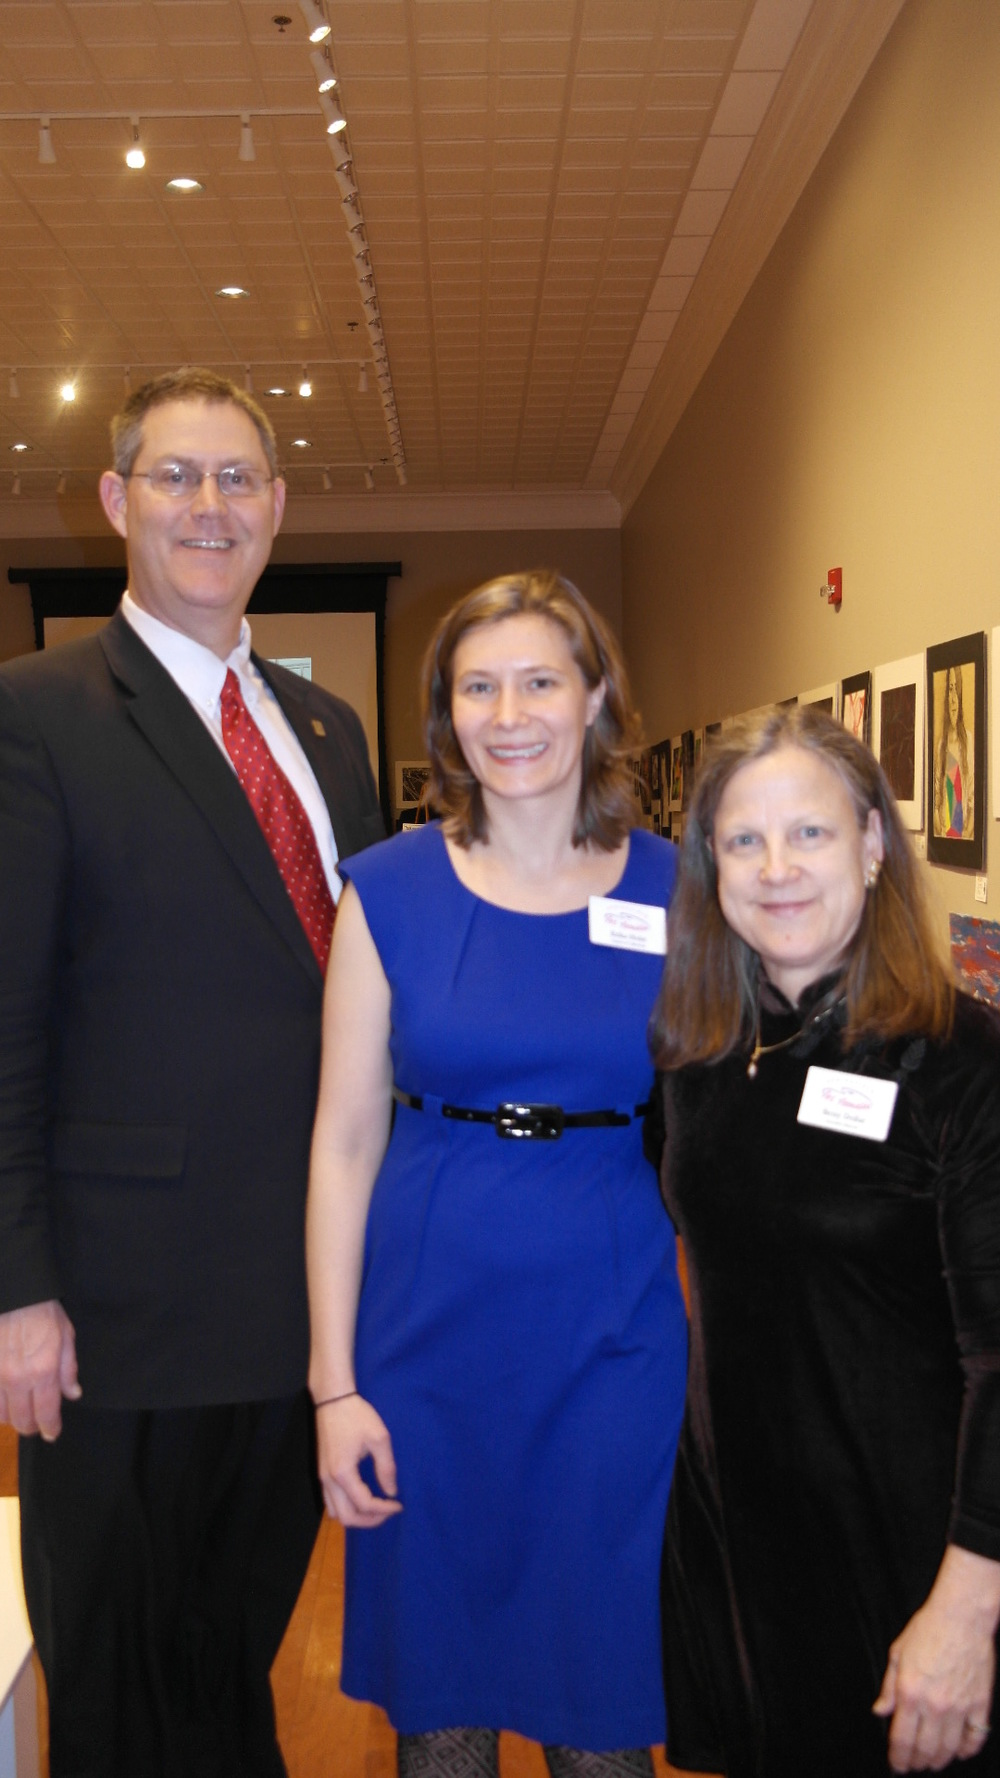 Steve Myers – Past president of the board of the Springfield Art Association Erika Holst – Curator of Collections, Springfield Art Association; Betsy Dollar – Executive Director of the Springfield Art Association